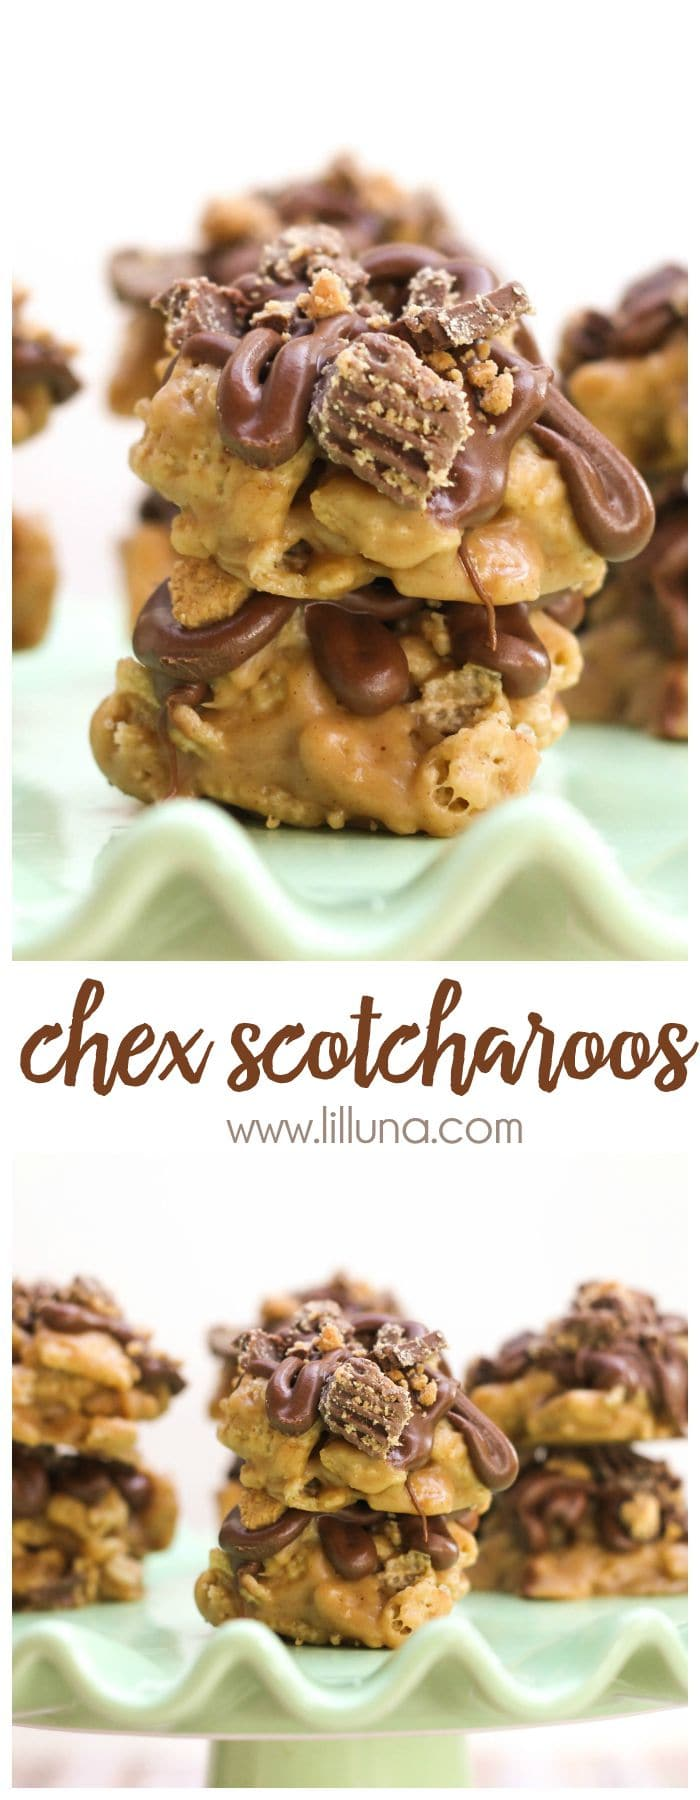 You can't eat just one!! Chex Scotcharoos - filled with butterscotch and chocolate!